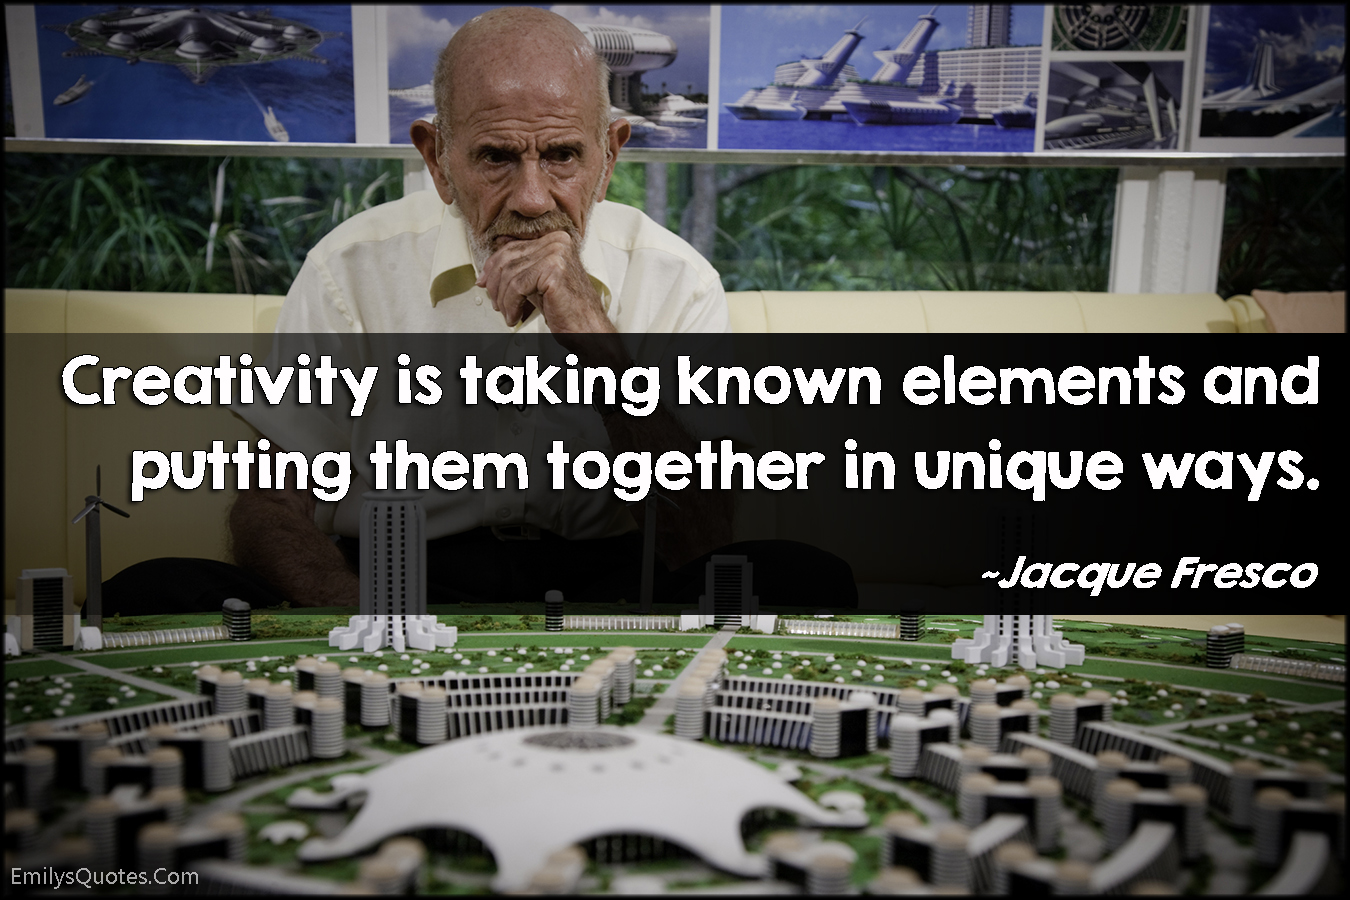 EmilysQuotes.Com - creativity, taking, known elements, unique way, imagination, intelligent, Jacque Fresco